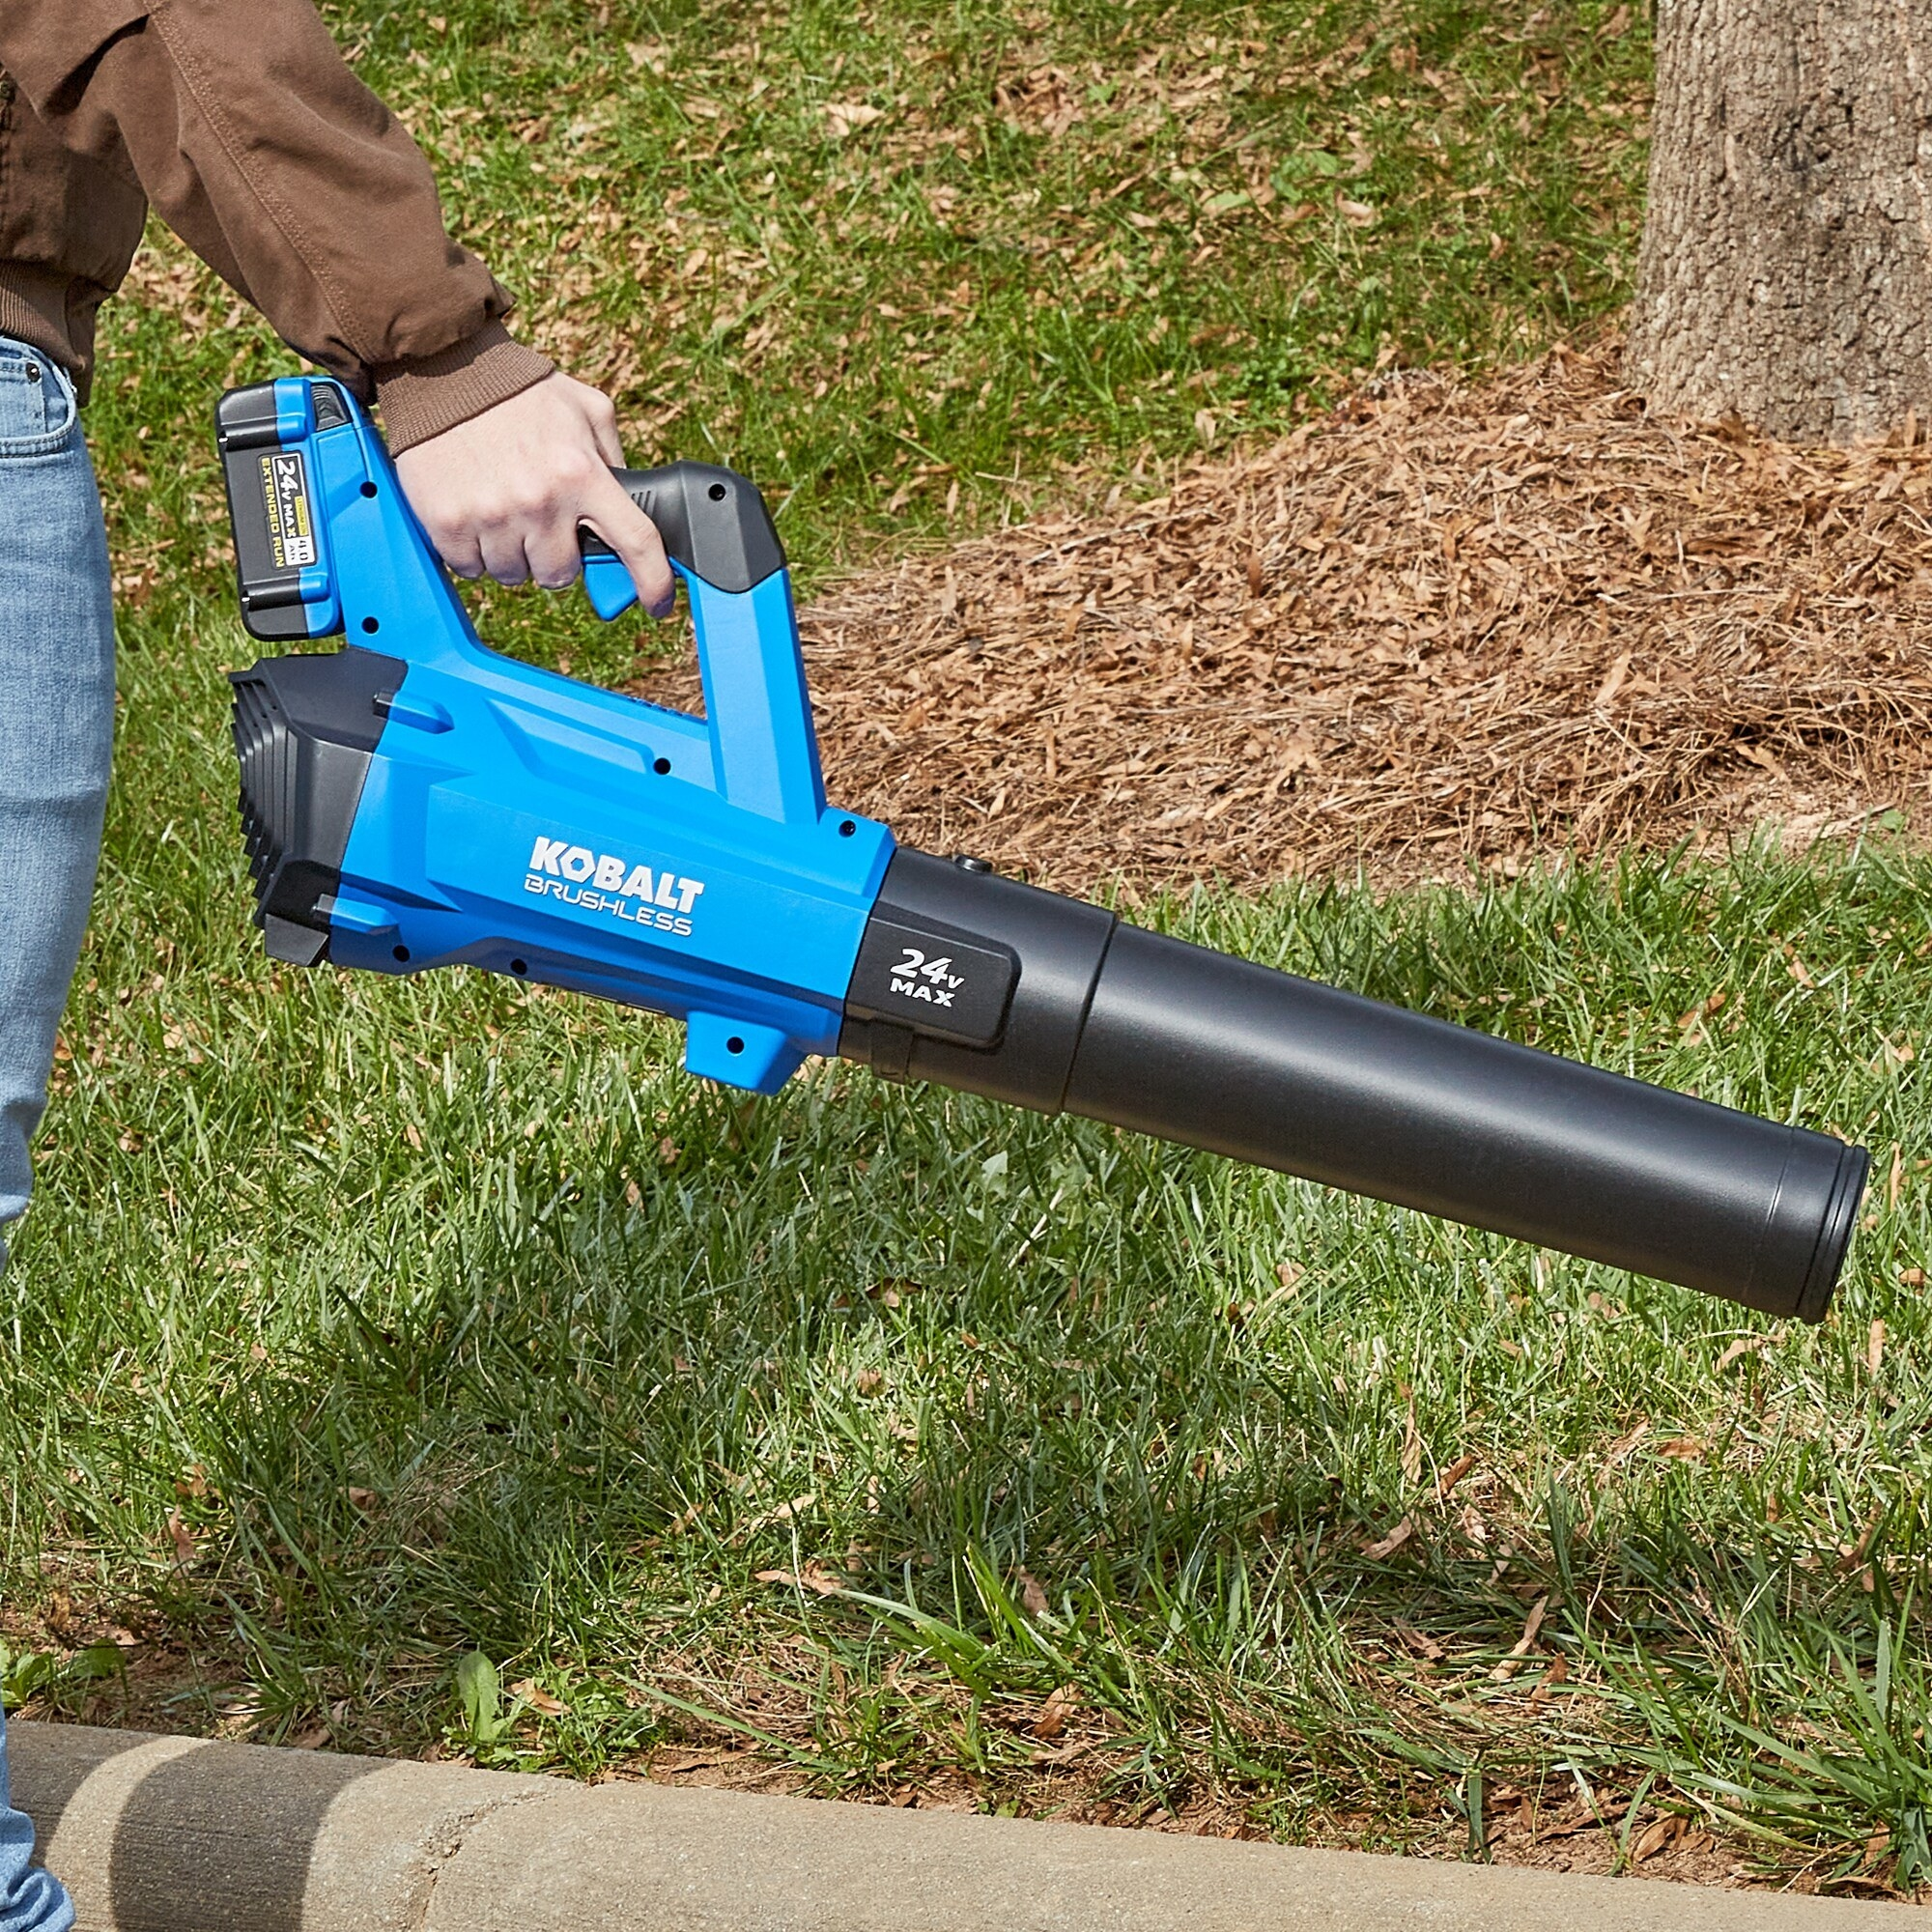 An image of a leaf blower and string trimmer combo kit